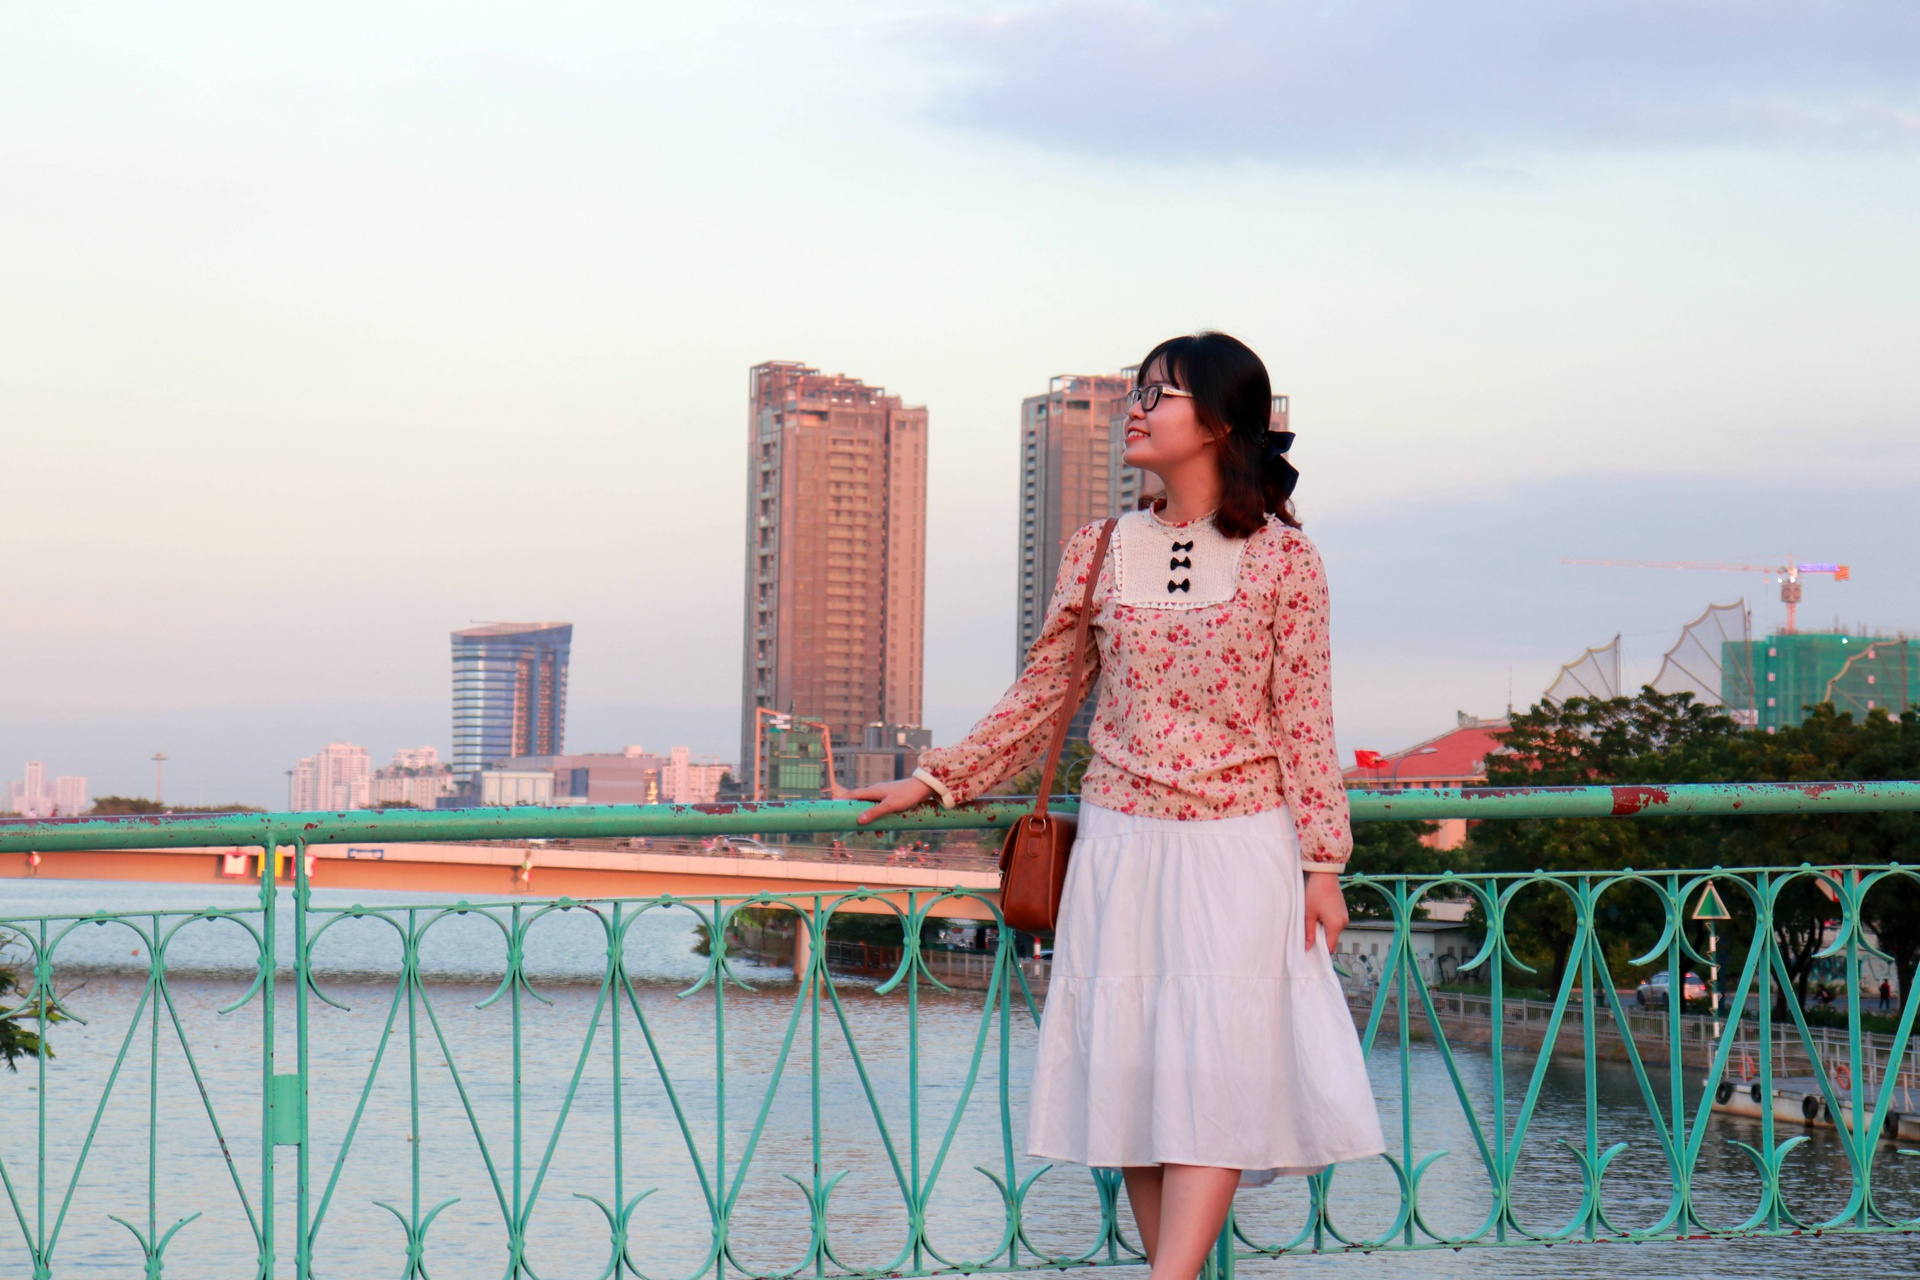 Six destinations for hunt perfect sunset pics in Ho Chi Minh City